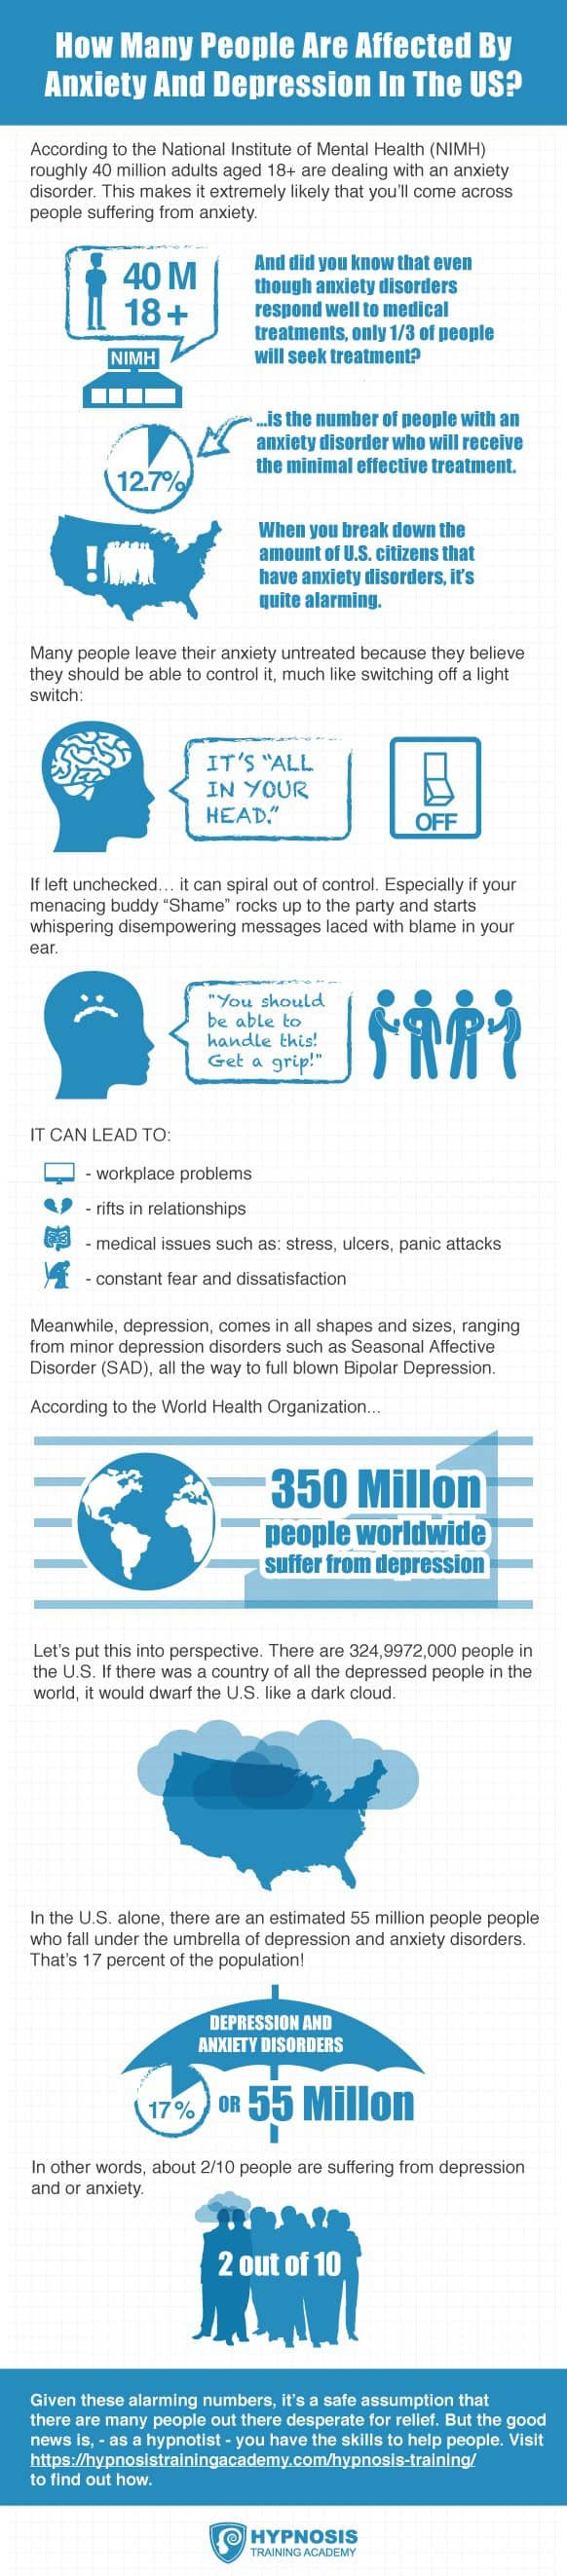 how many people have depression anxiety disorders infographic